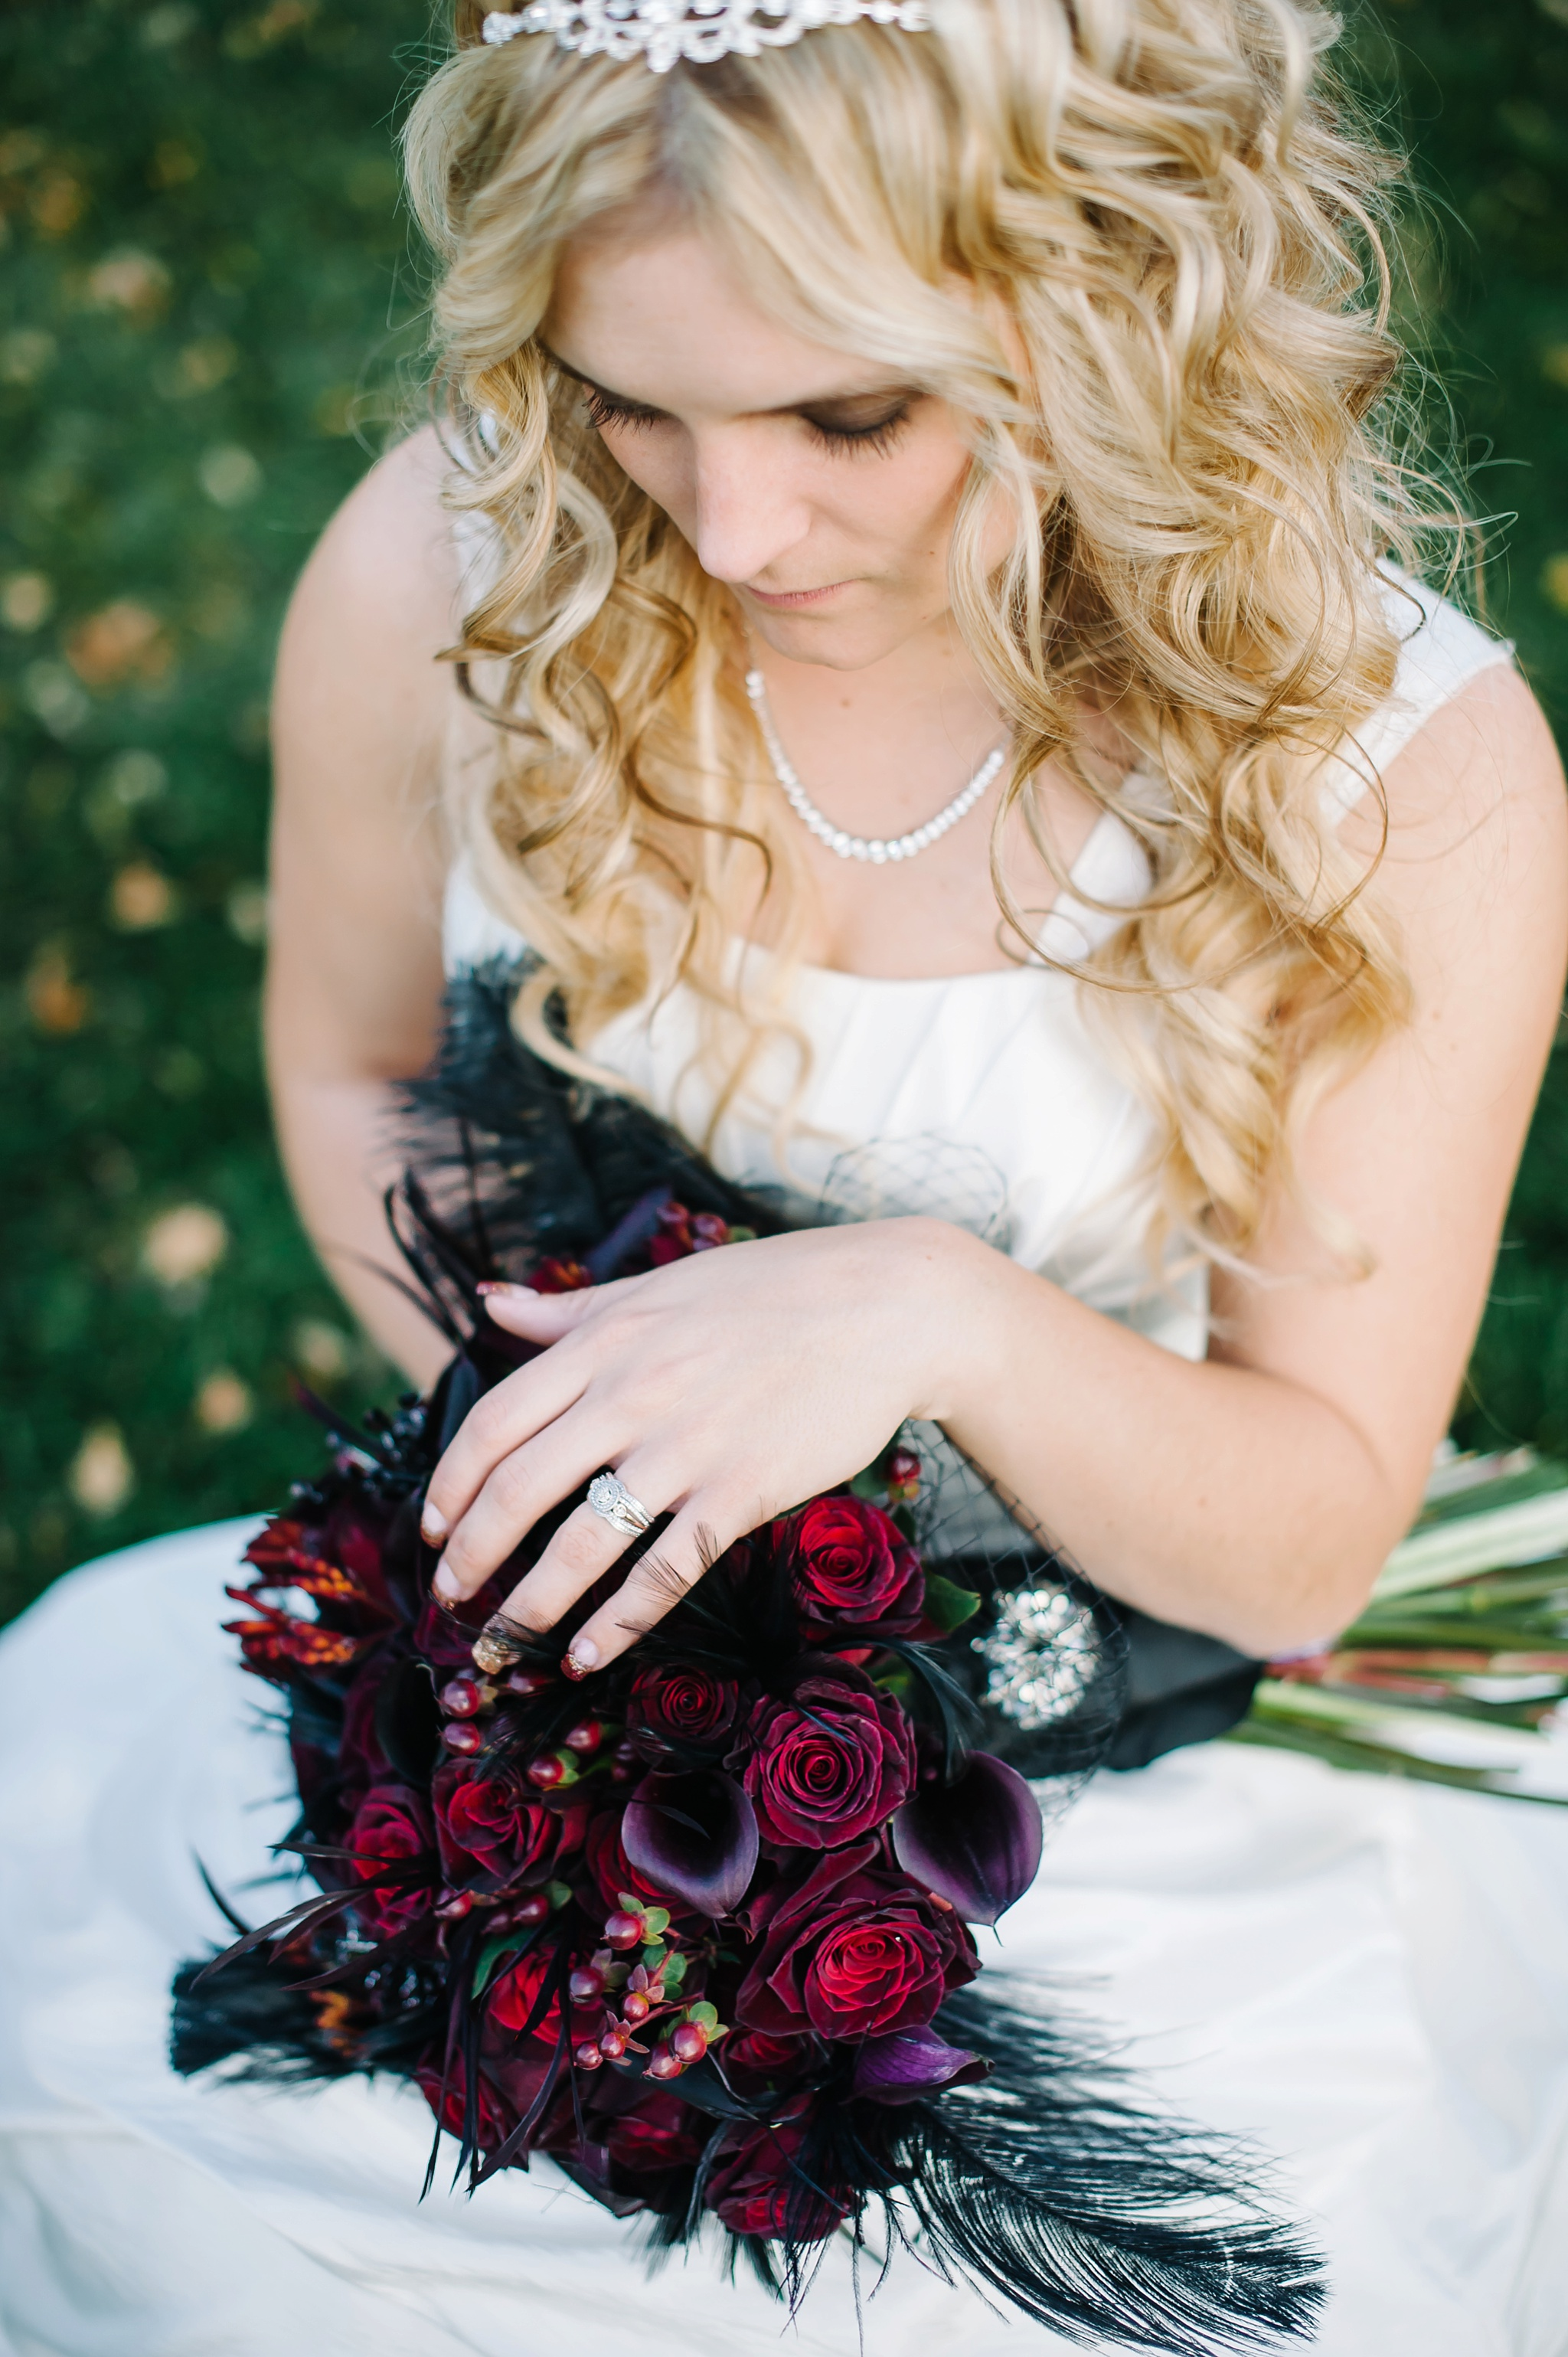 SLC Utah Wedding Photographer Ali Sumsion 096